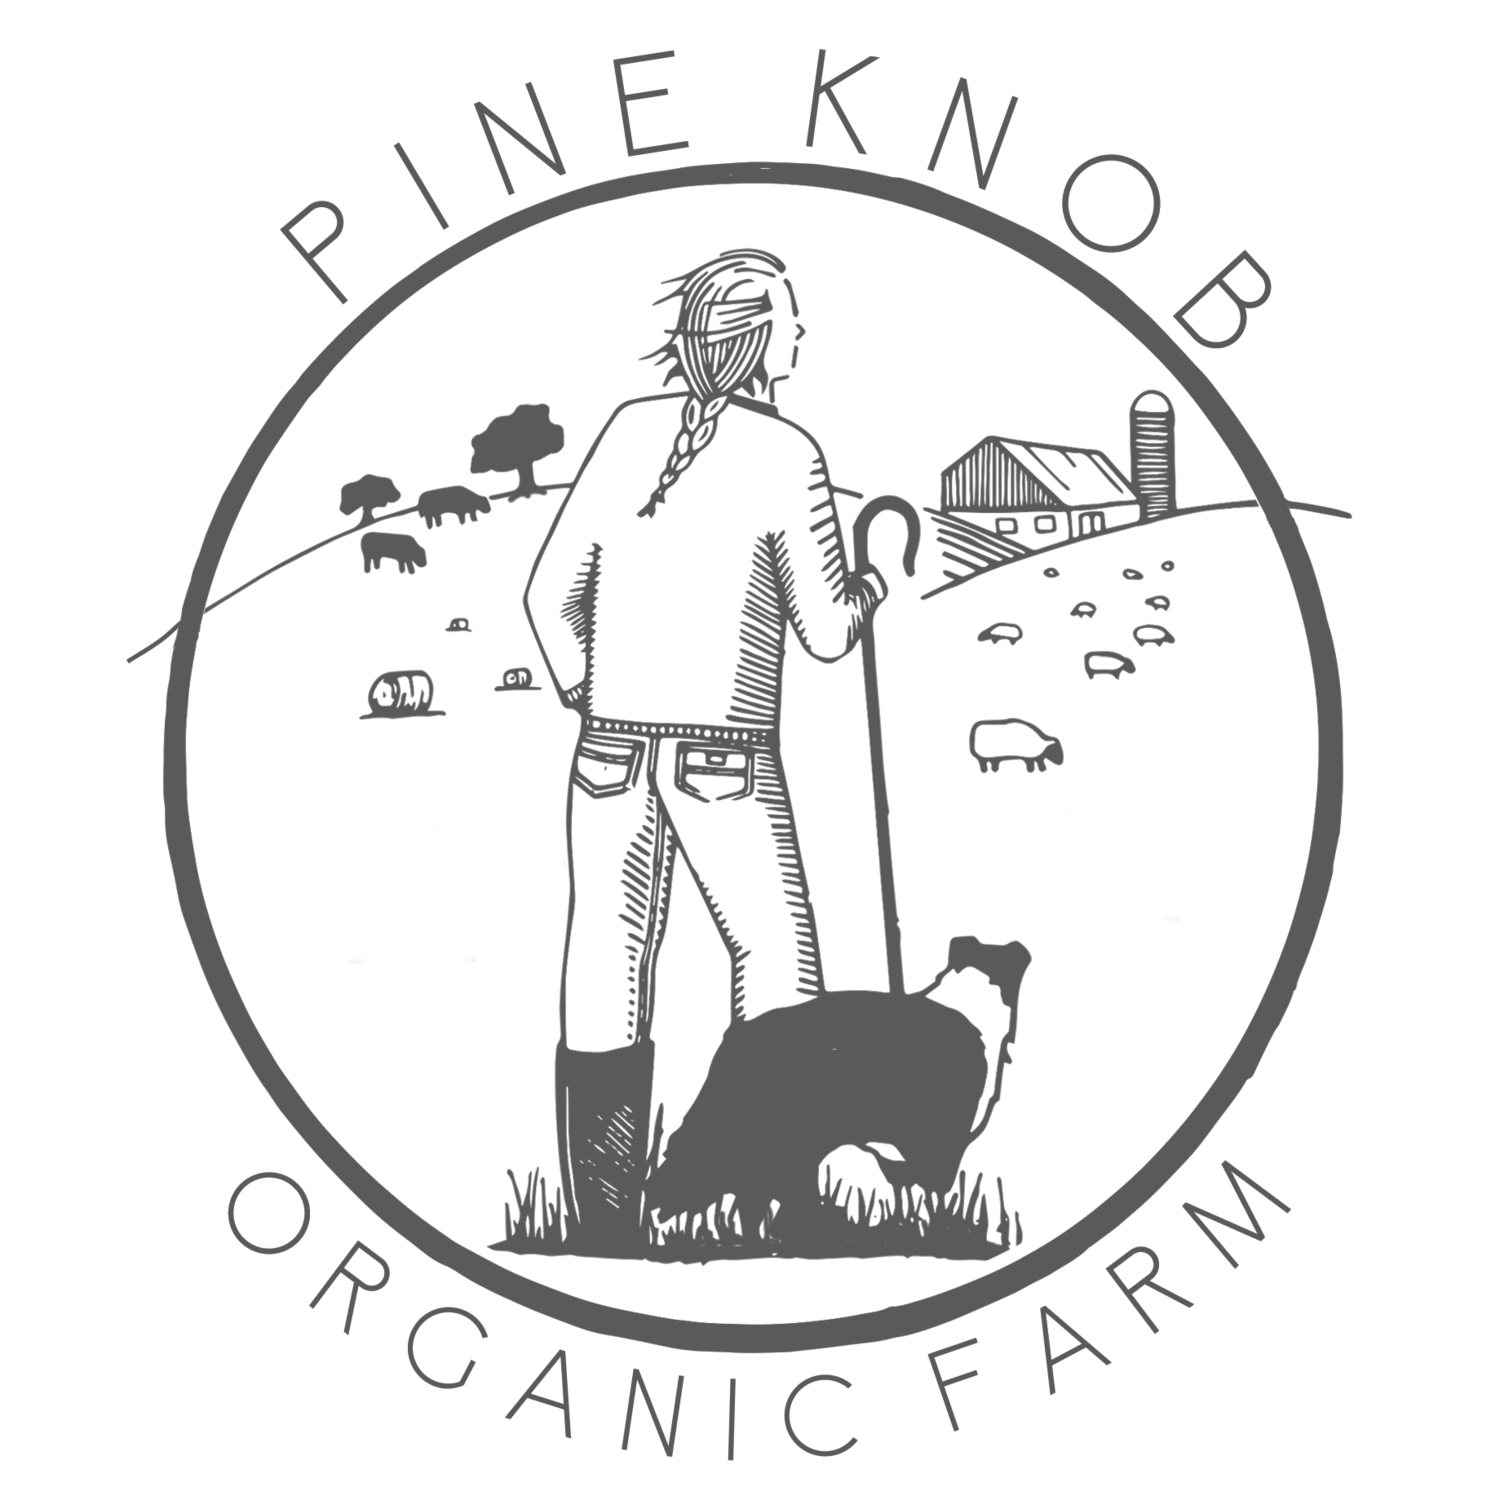 Drawing farmer crop production. Pine knob organic farm